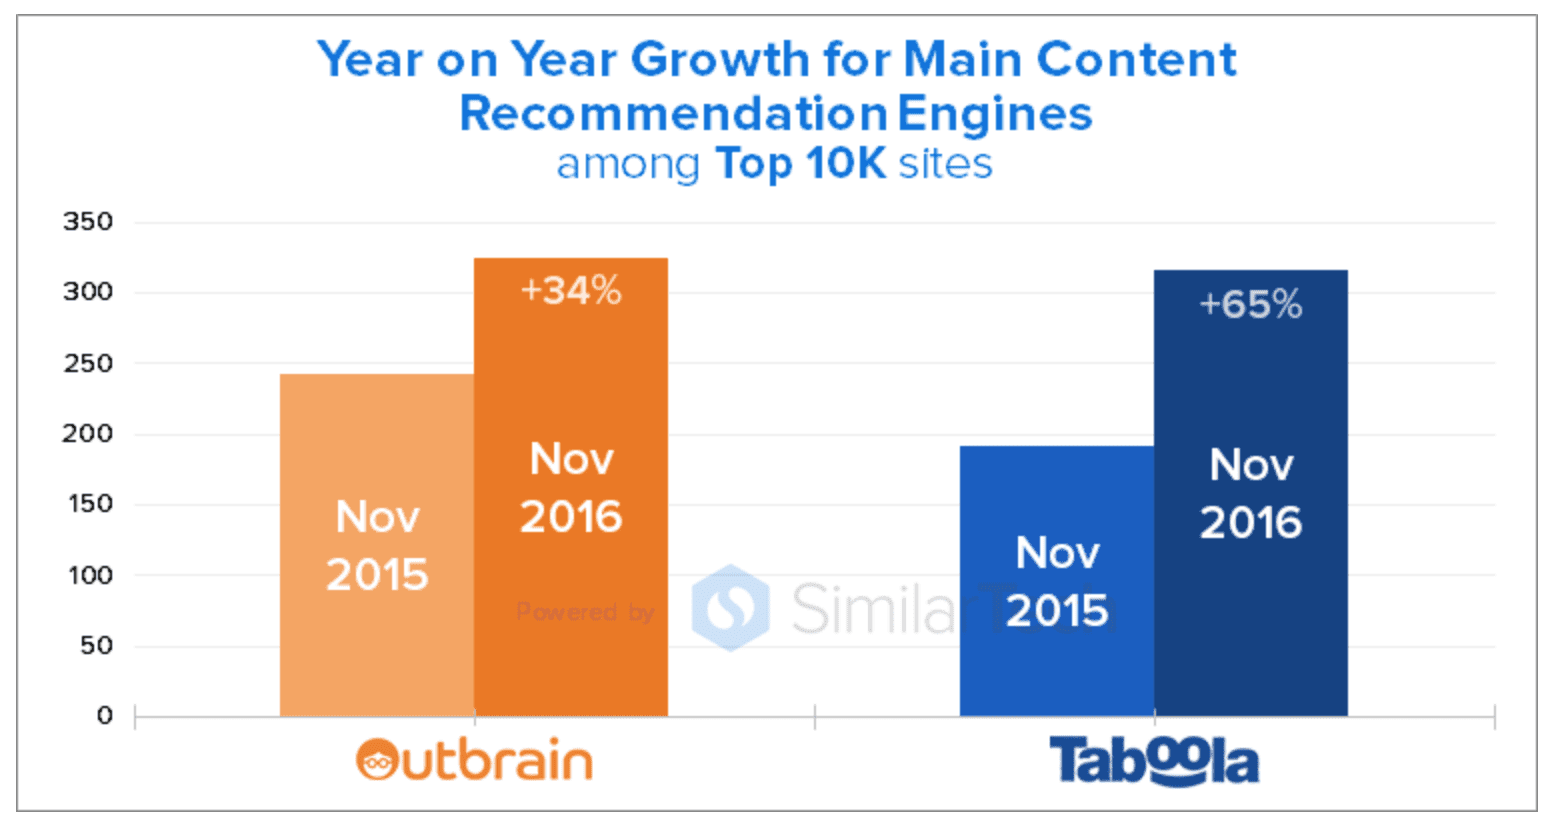 Year on Year Growth for Main Content Recommendation Engines